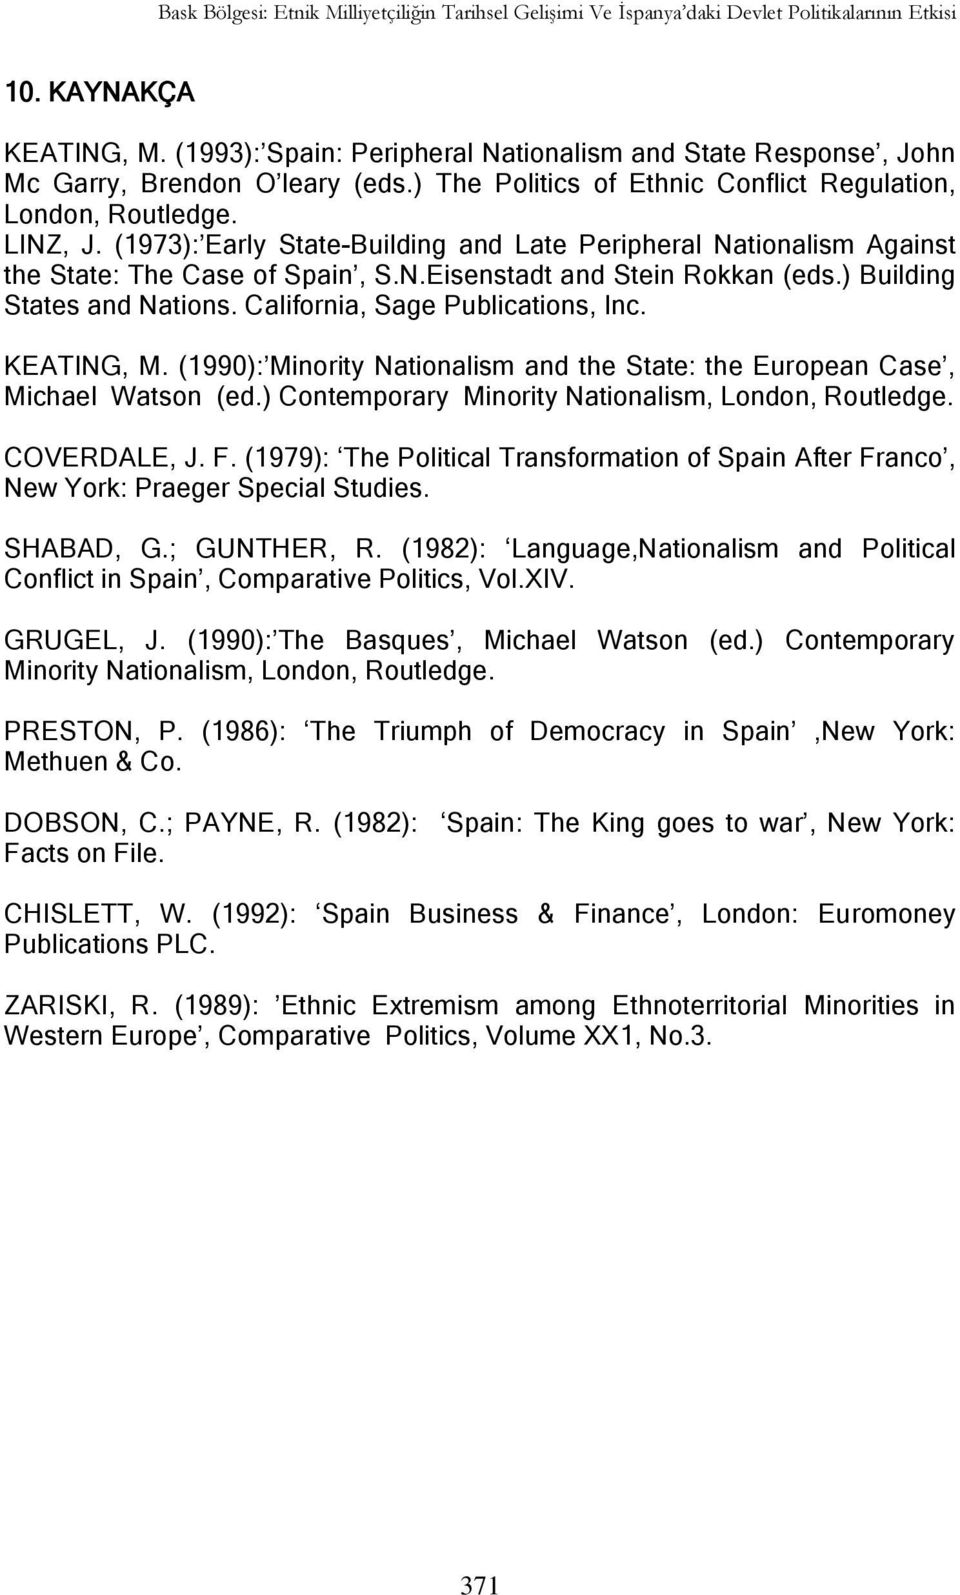 (1973): Early State-Building and Late Peripheral Nationalism Against the State: The Case of Spain, S.N.Eisenstadt and Stein Rokkan (eds.) Building States and Nations.